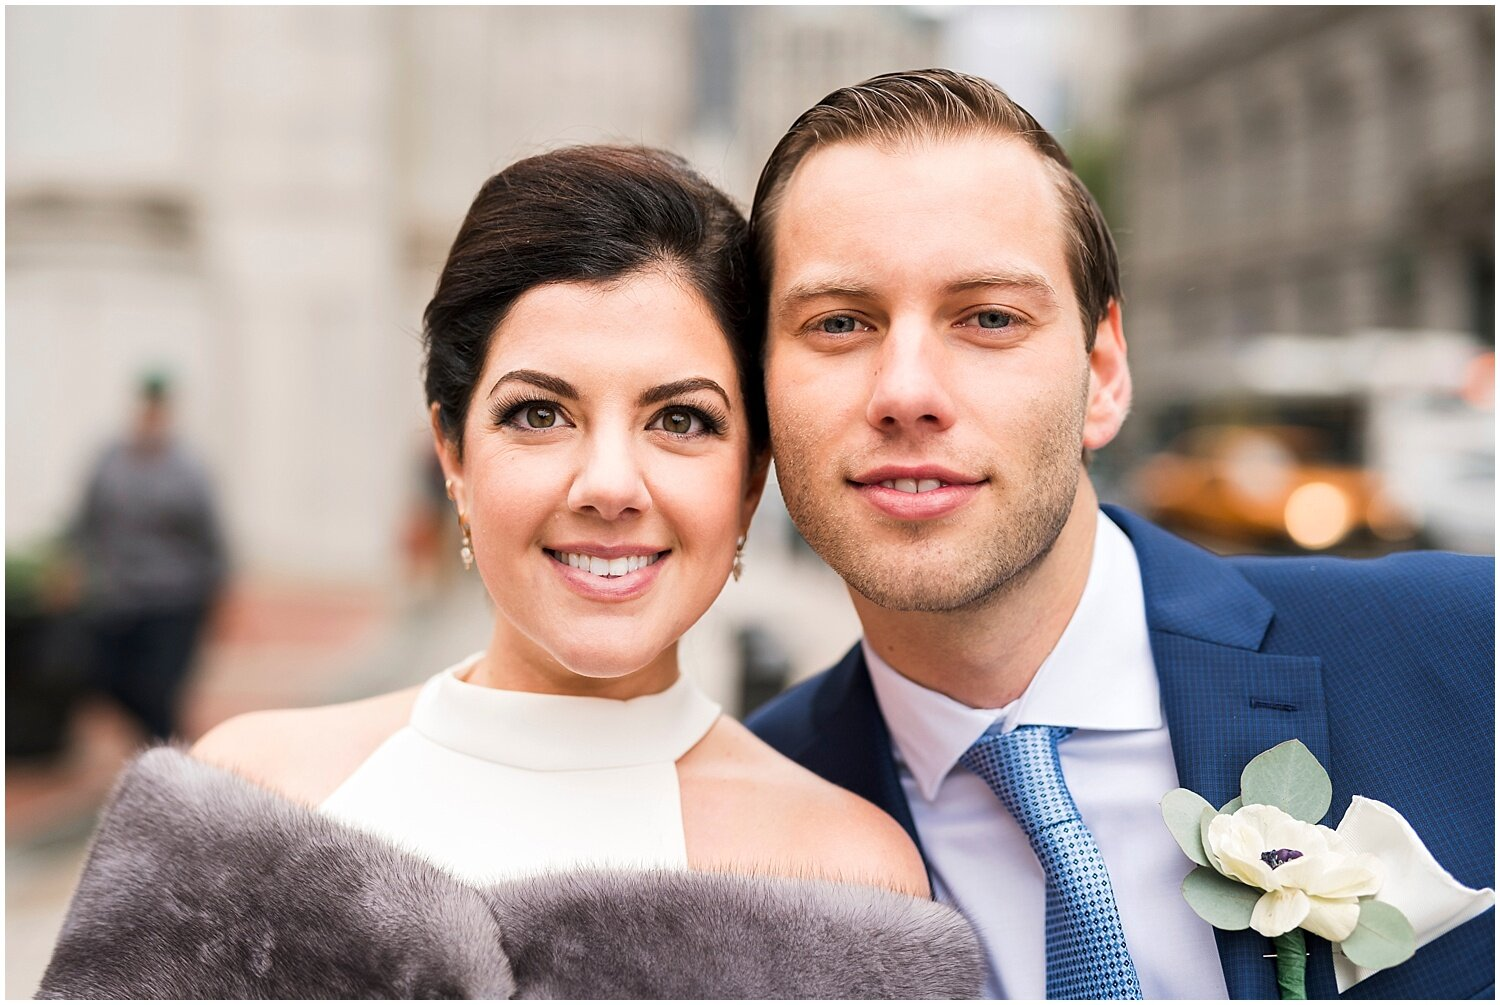 NYC-City-Hall-Courthouse-Elopement-Photographer-Apollo-Fields-019.jpg